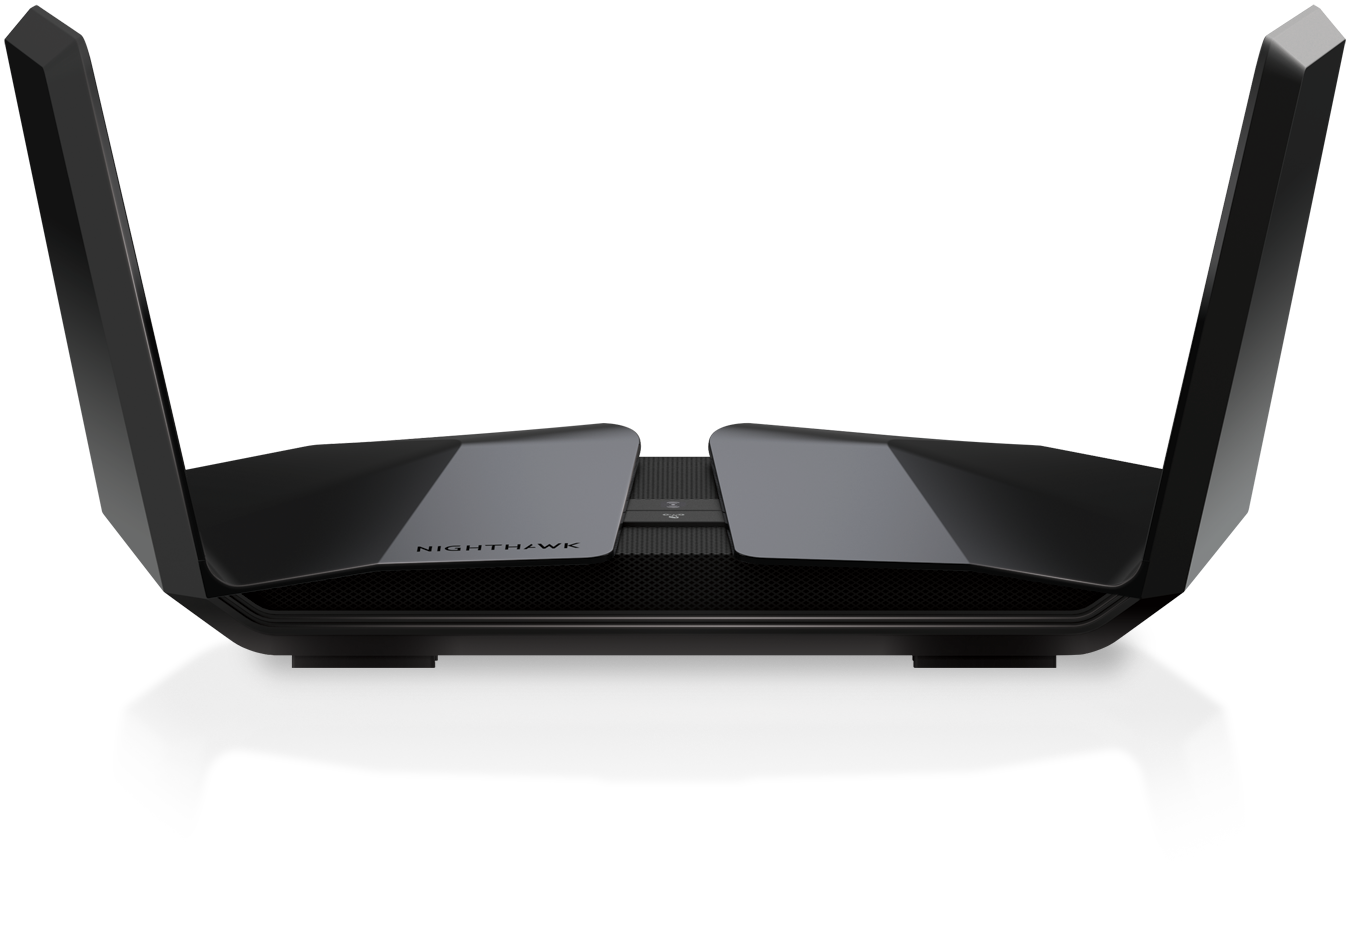 Router Wi-Fi 6 Nighthawk Tri-band AX12 12-Stream